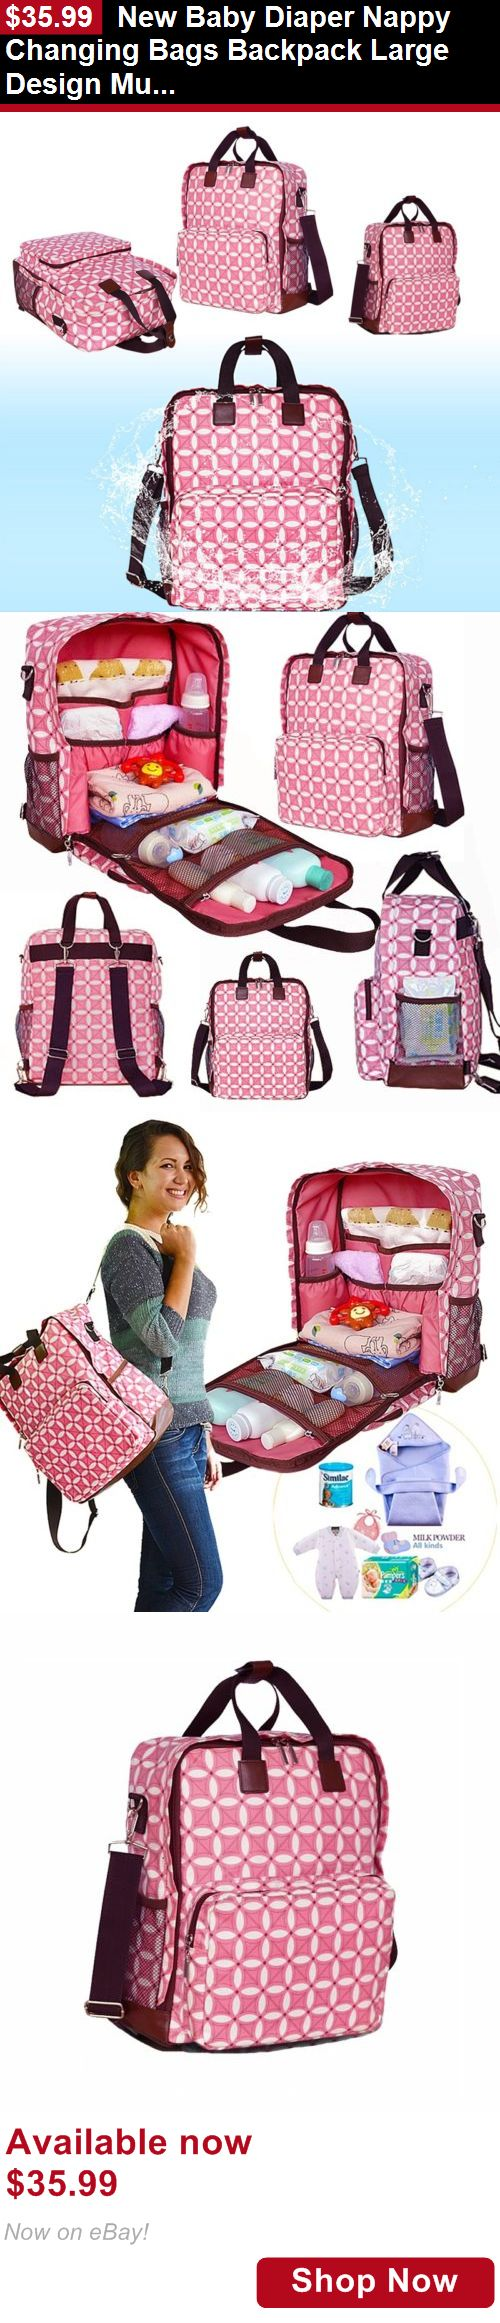 Baby Diaper Bags: New Baby Diaper Nappy Changing Bags Backpack Large Design Multi Ways Waterproof BUY IT NOW ONLY: $35.99